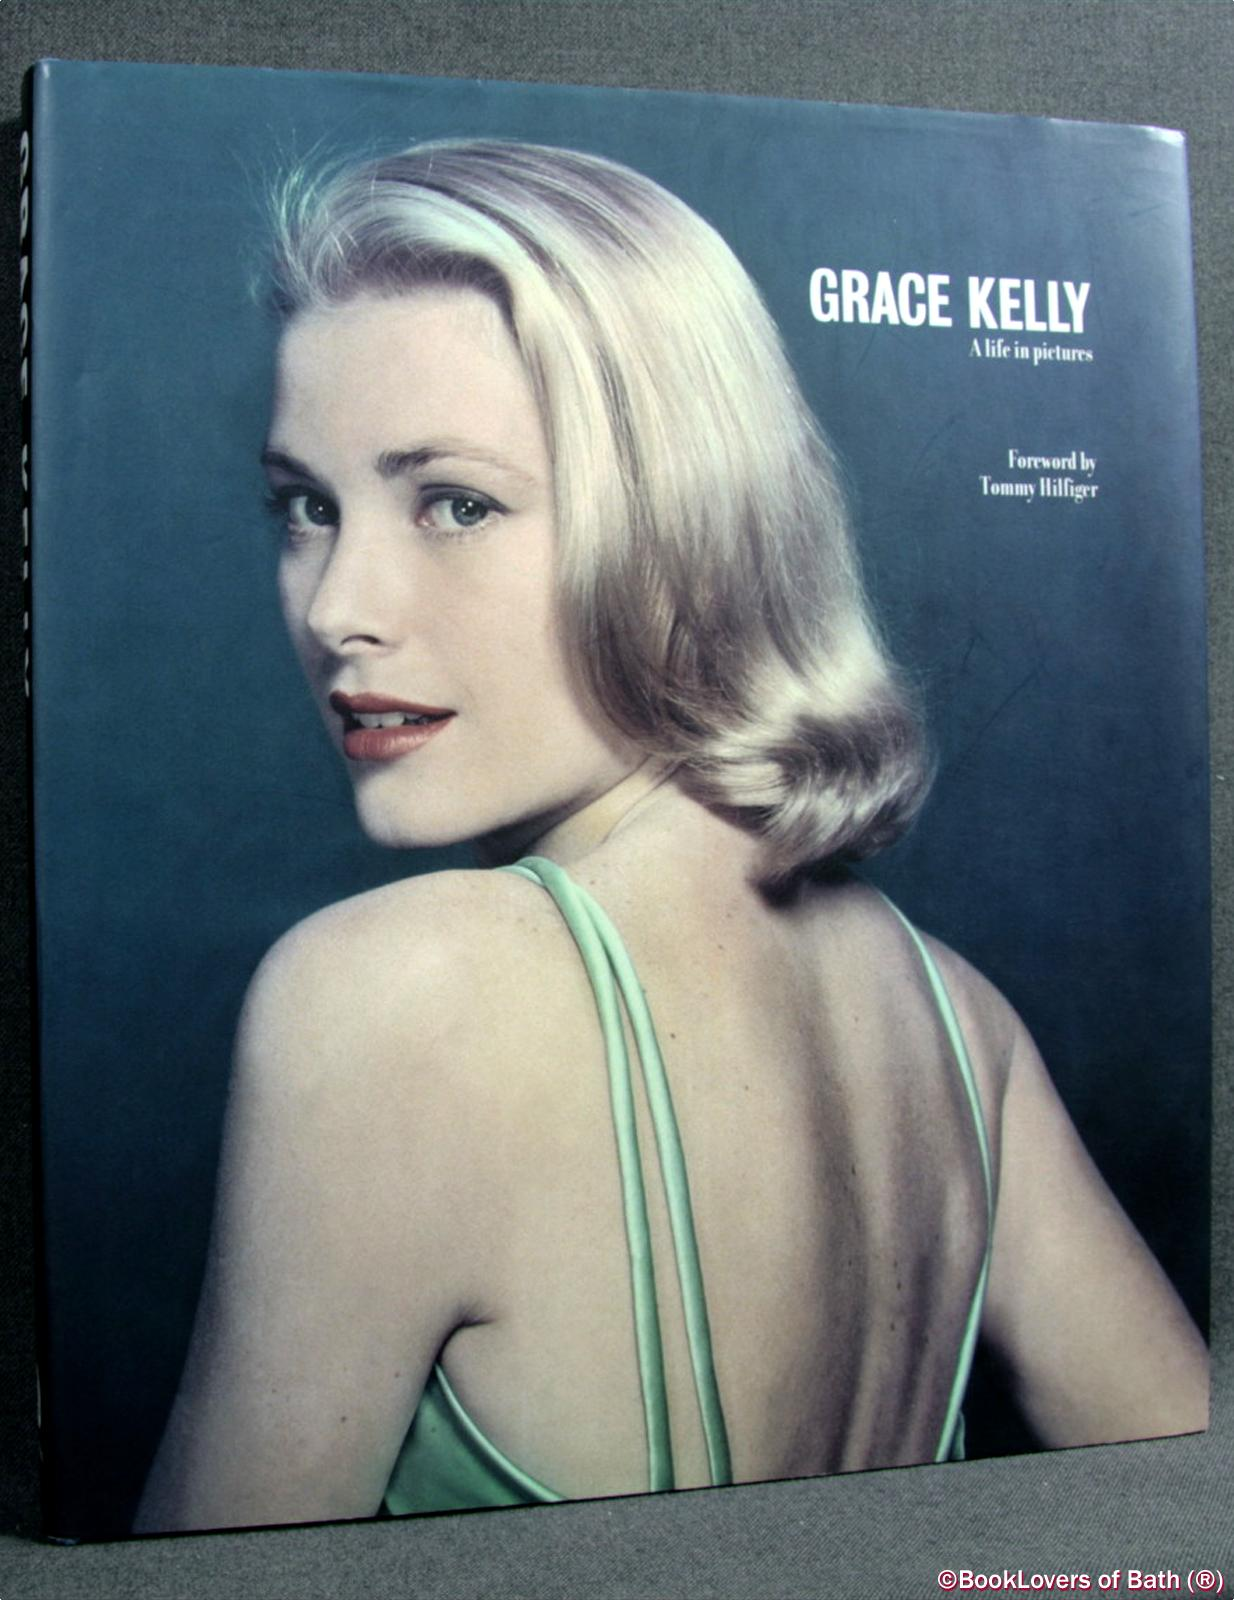 Grace Kelly: A Life in Pictures - Edited by Yann-Brice Dherbier & Pierre-Henri Verlhac